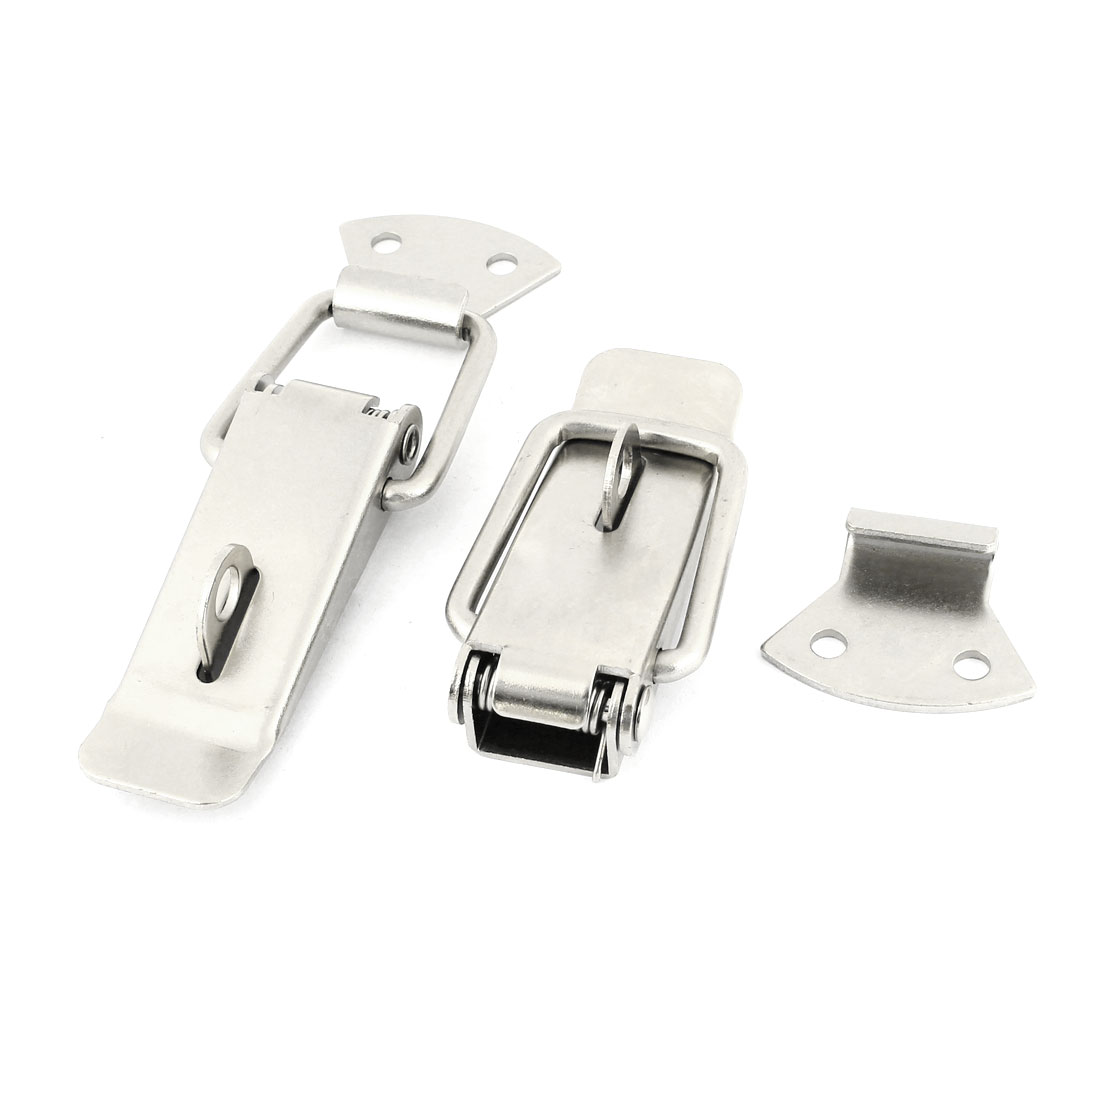 "Cabinet Security Lock Spring Loaded Stainless Steel Toggle Latch Hasp 4.1"" 2sets"